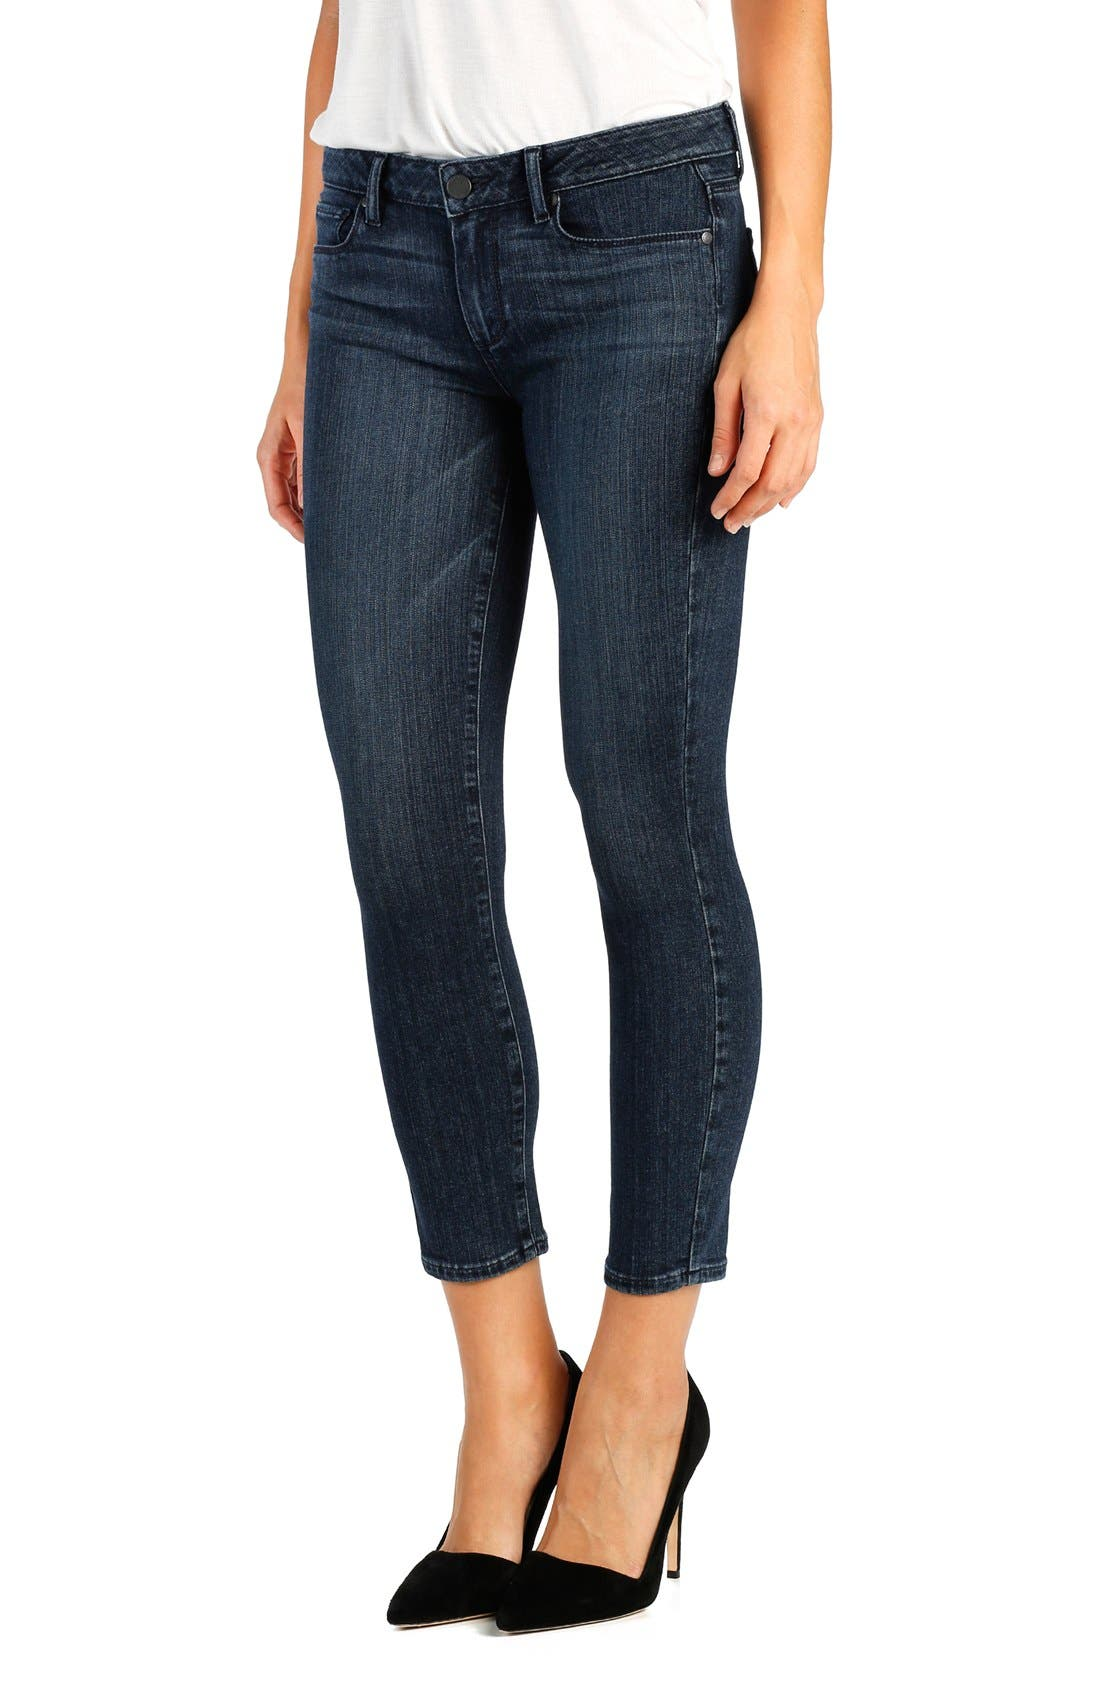 Alternate Image 1 Selected - PAIGE 'Transcend - Verdugo' Crop Skinny Jeans (Shelby)